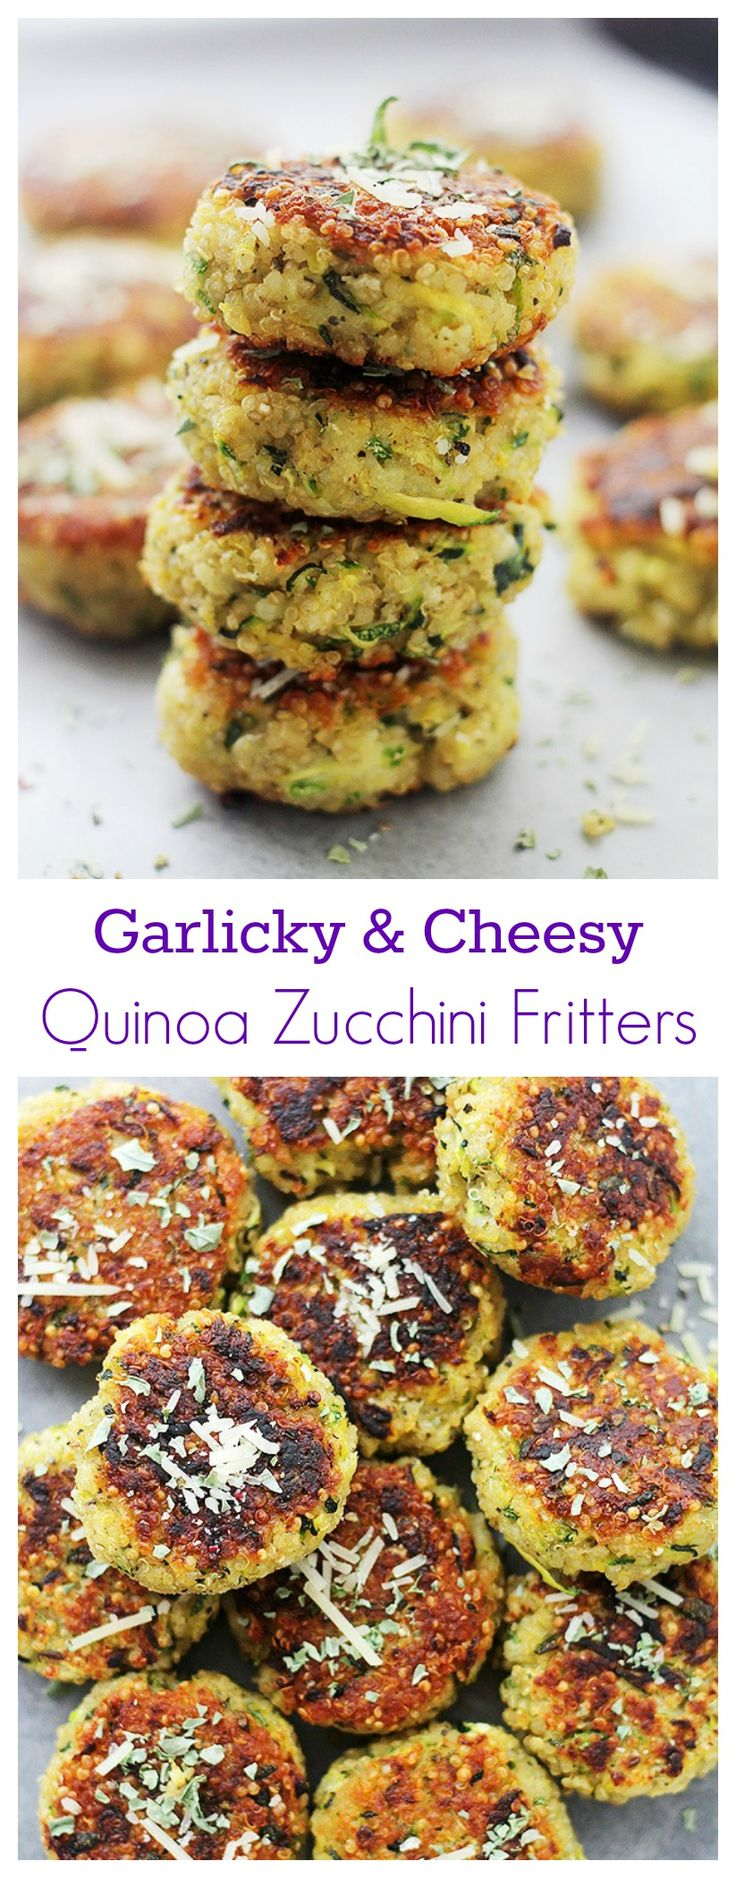 zucchini fritters www diethood com packed with quinoa and zucchini ...